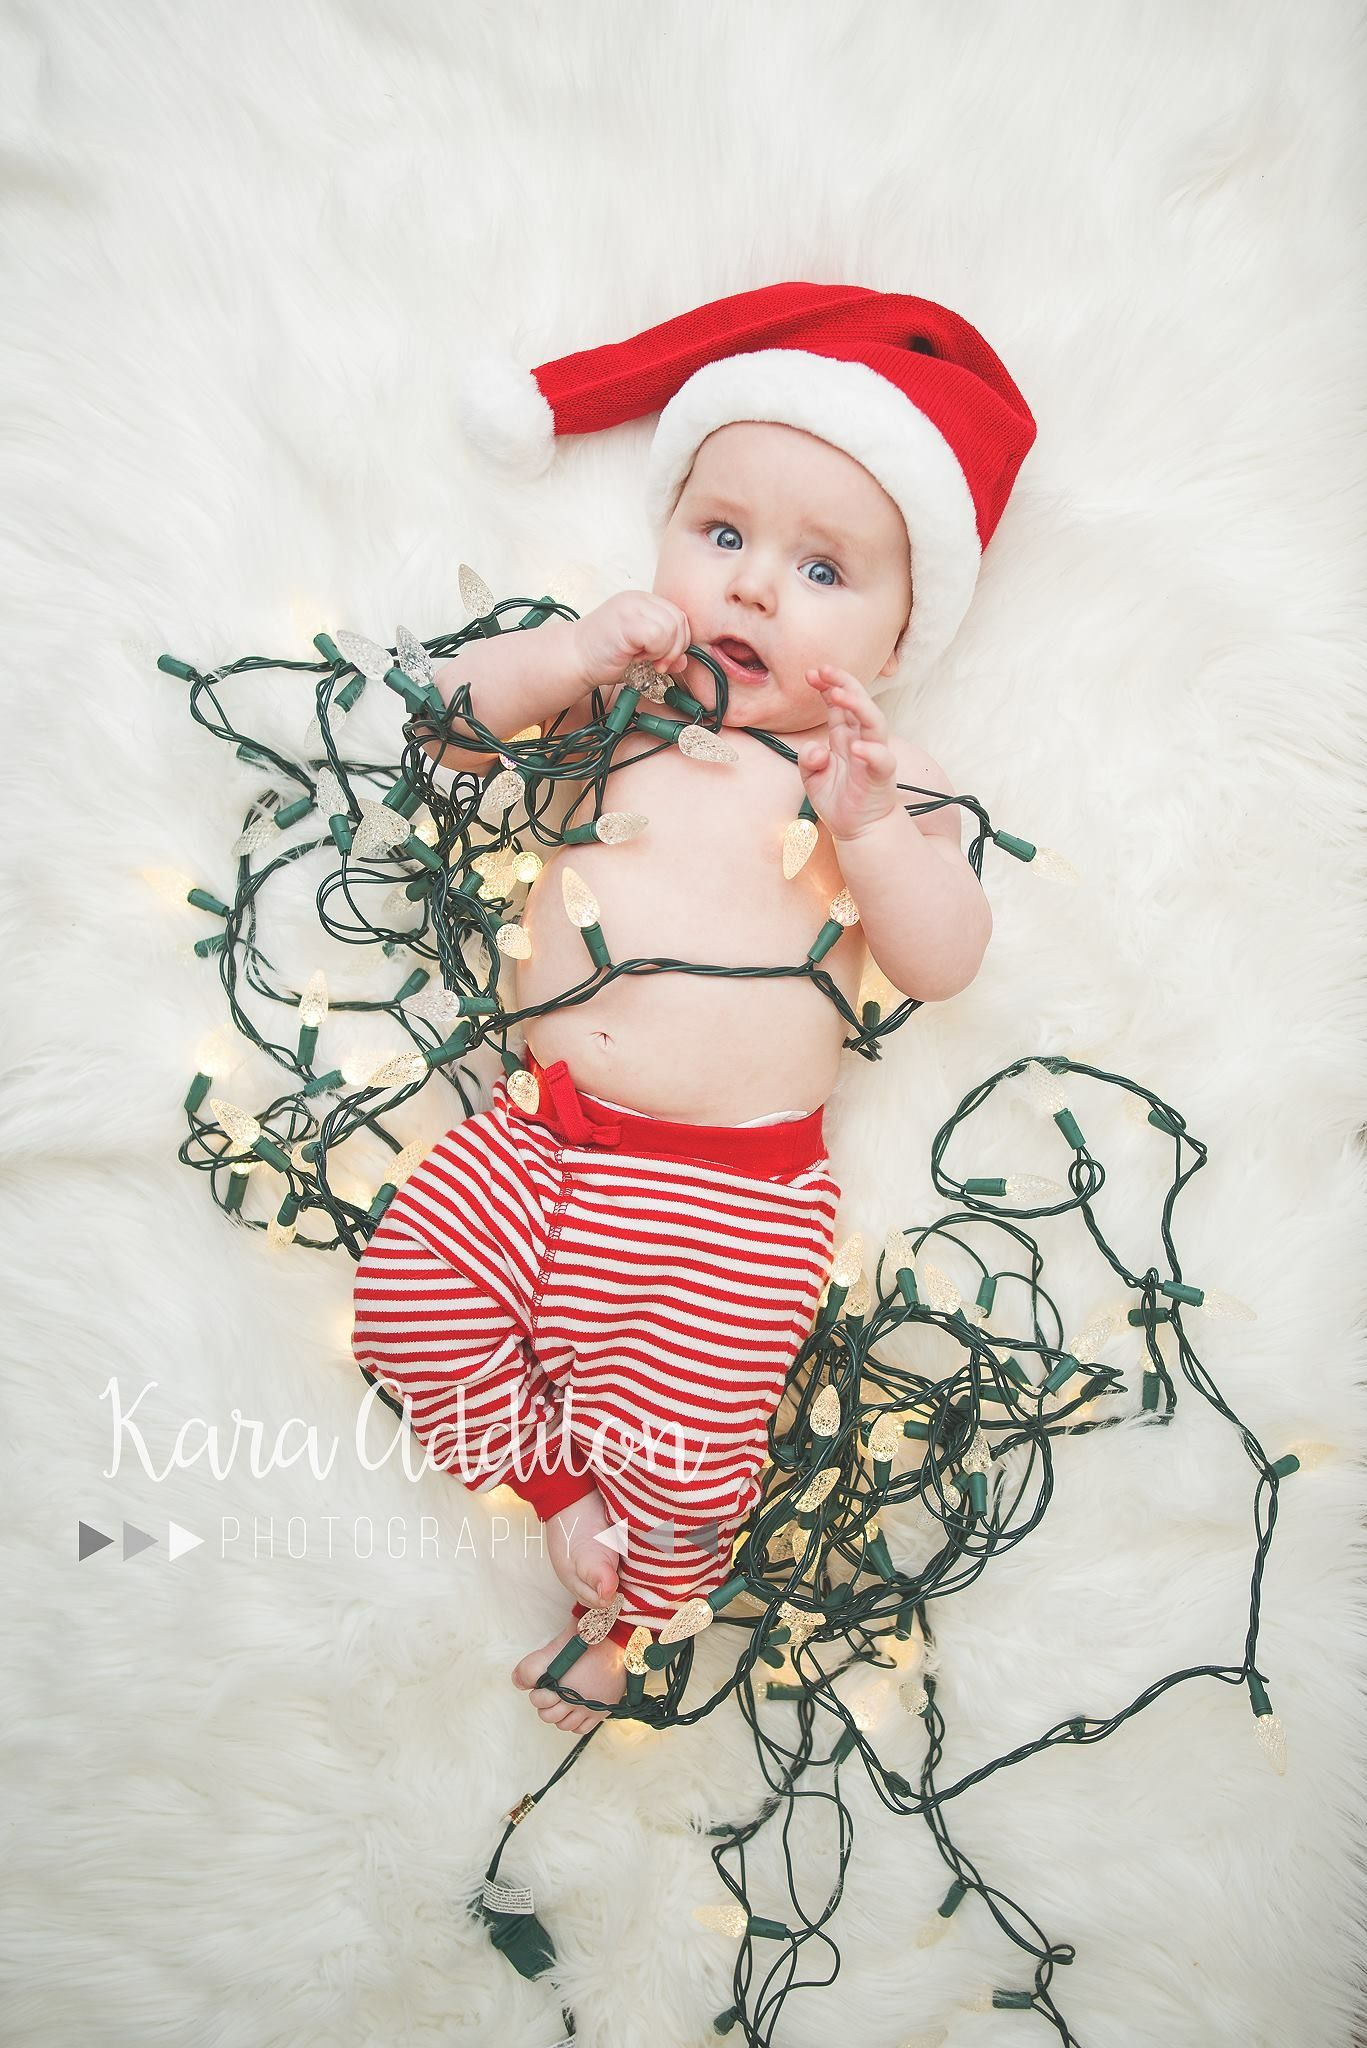 7083dbe9bb2e2 Baby s first Christmas holiday photoshoot lights Santa hat and Christmas  pj s